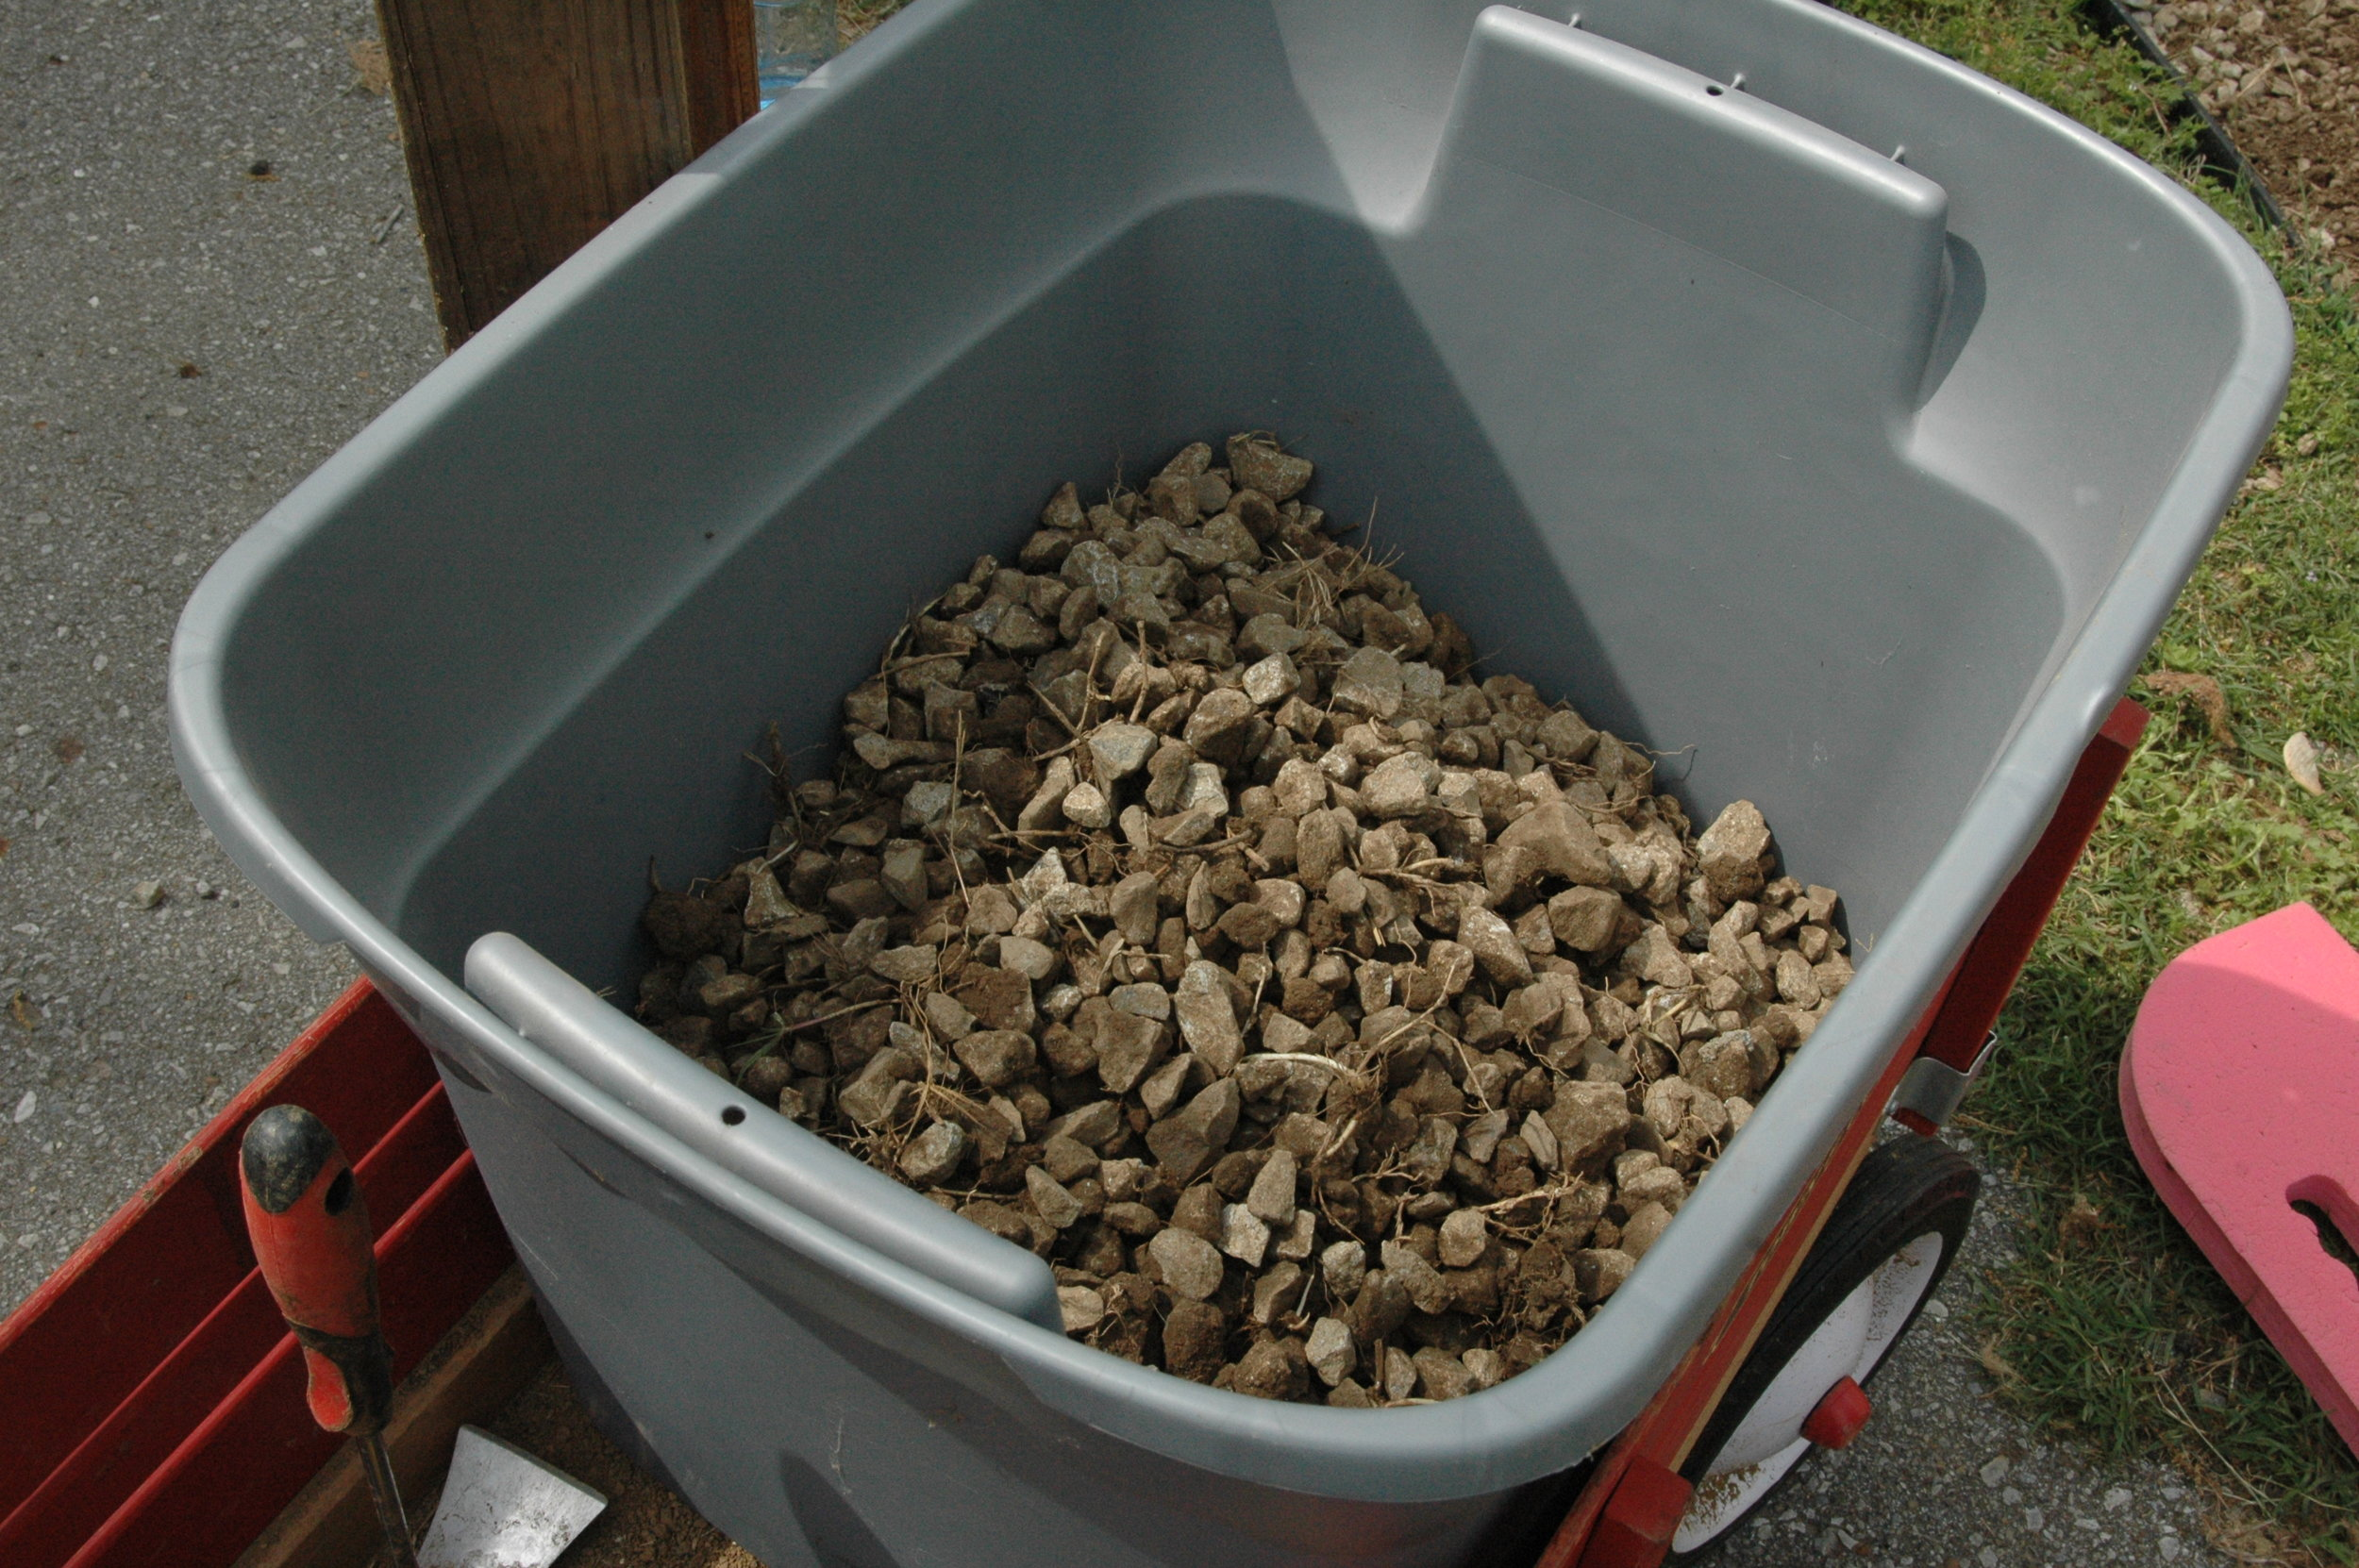 One of many boxes of rocks removed from the garden